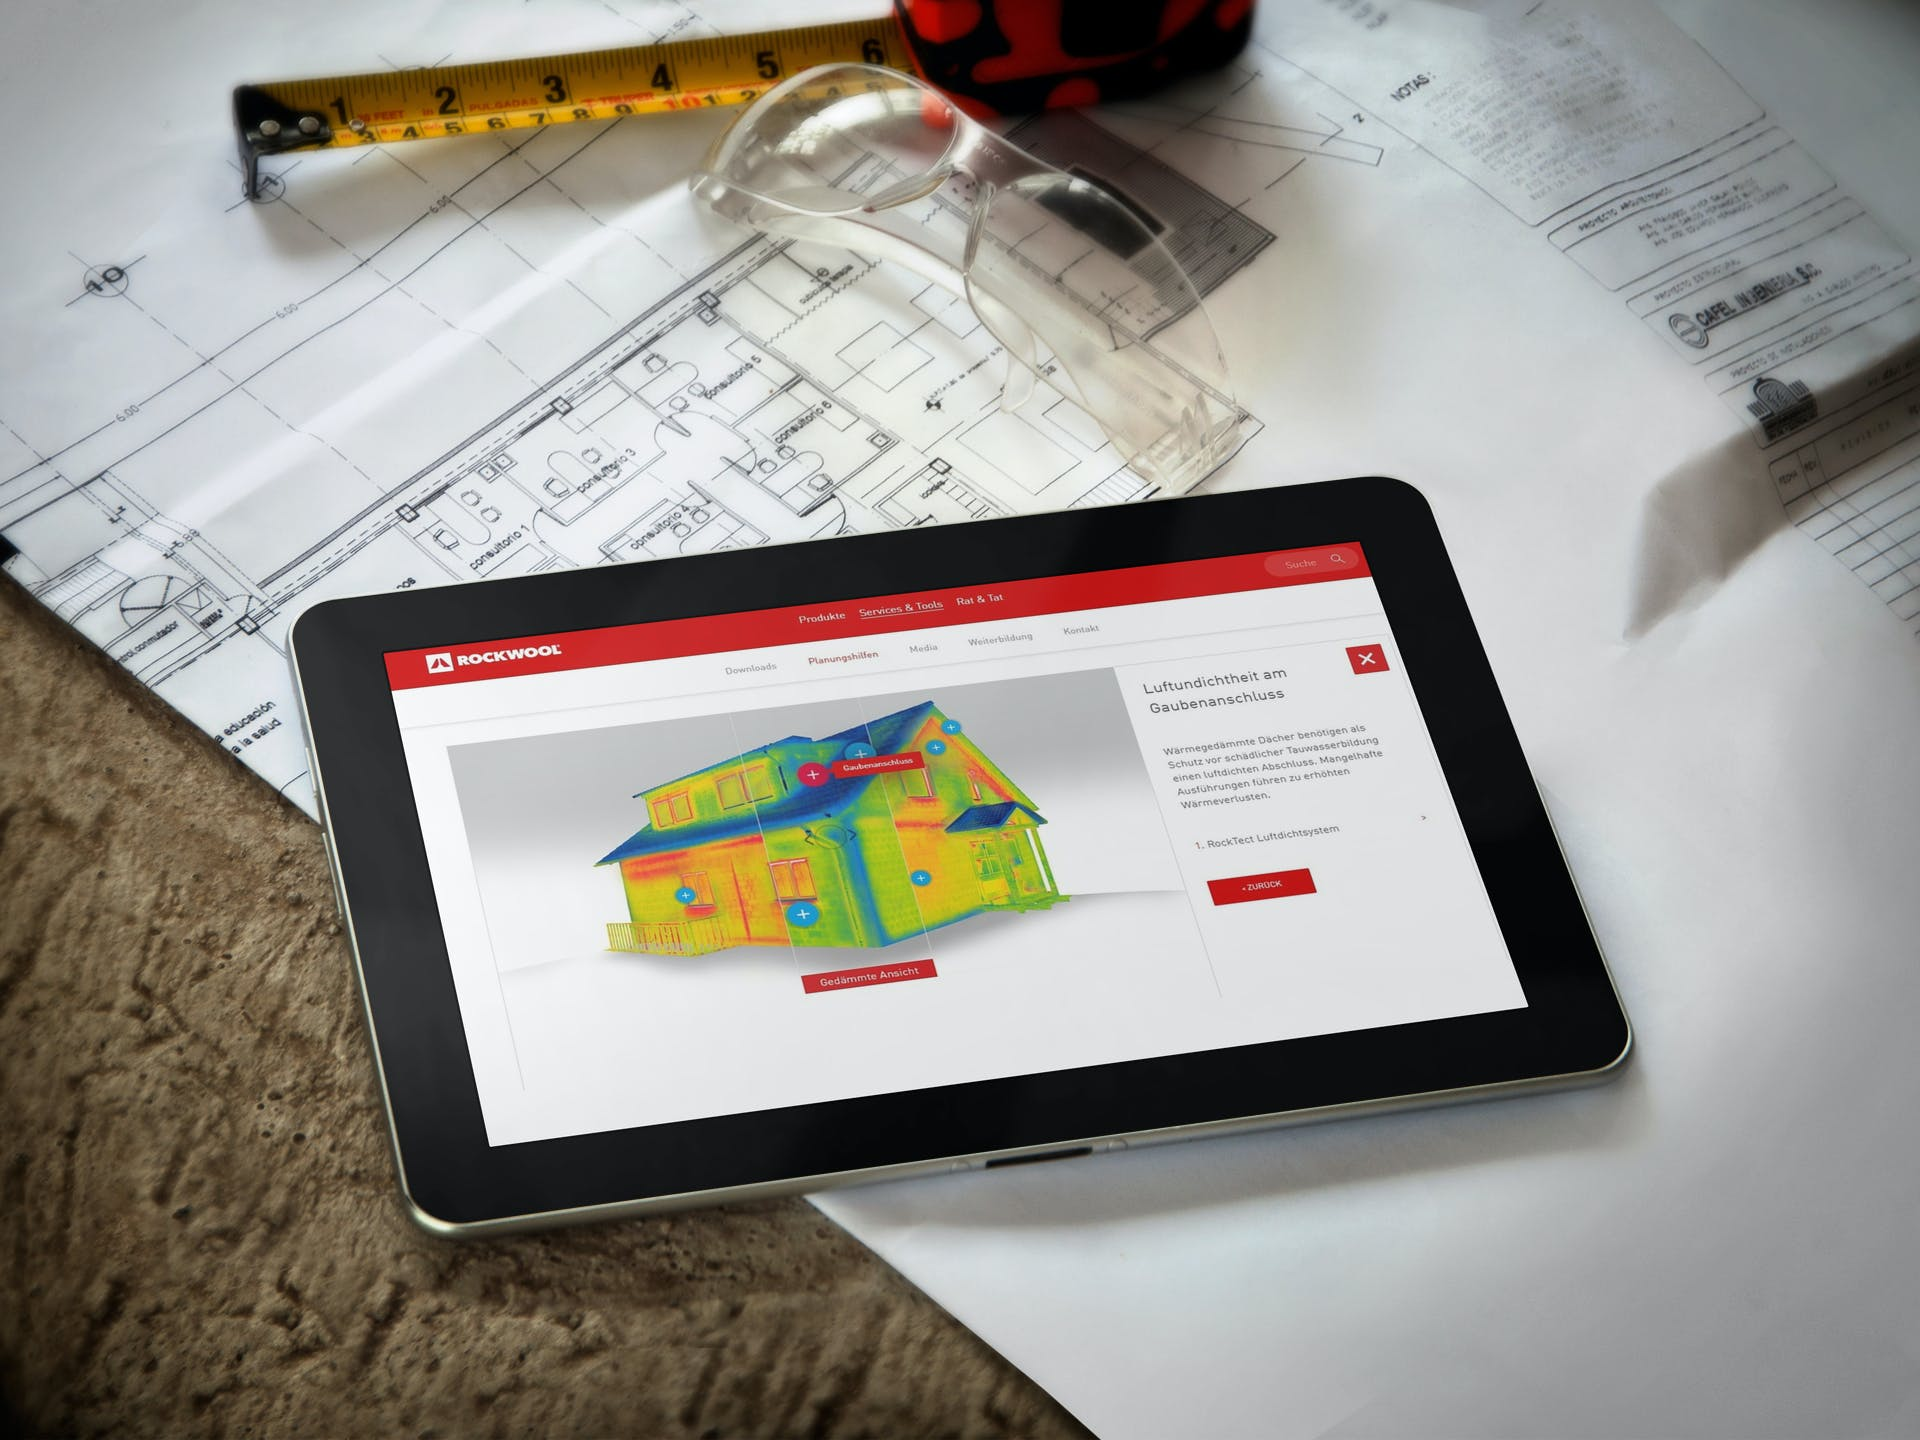 thermocheck, thermography, tool, ipad on a desk, germany